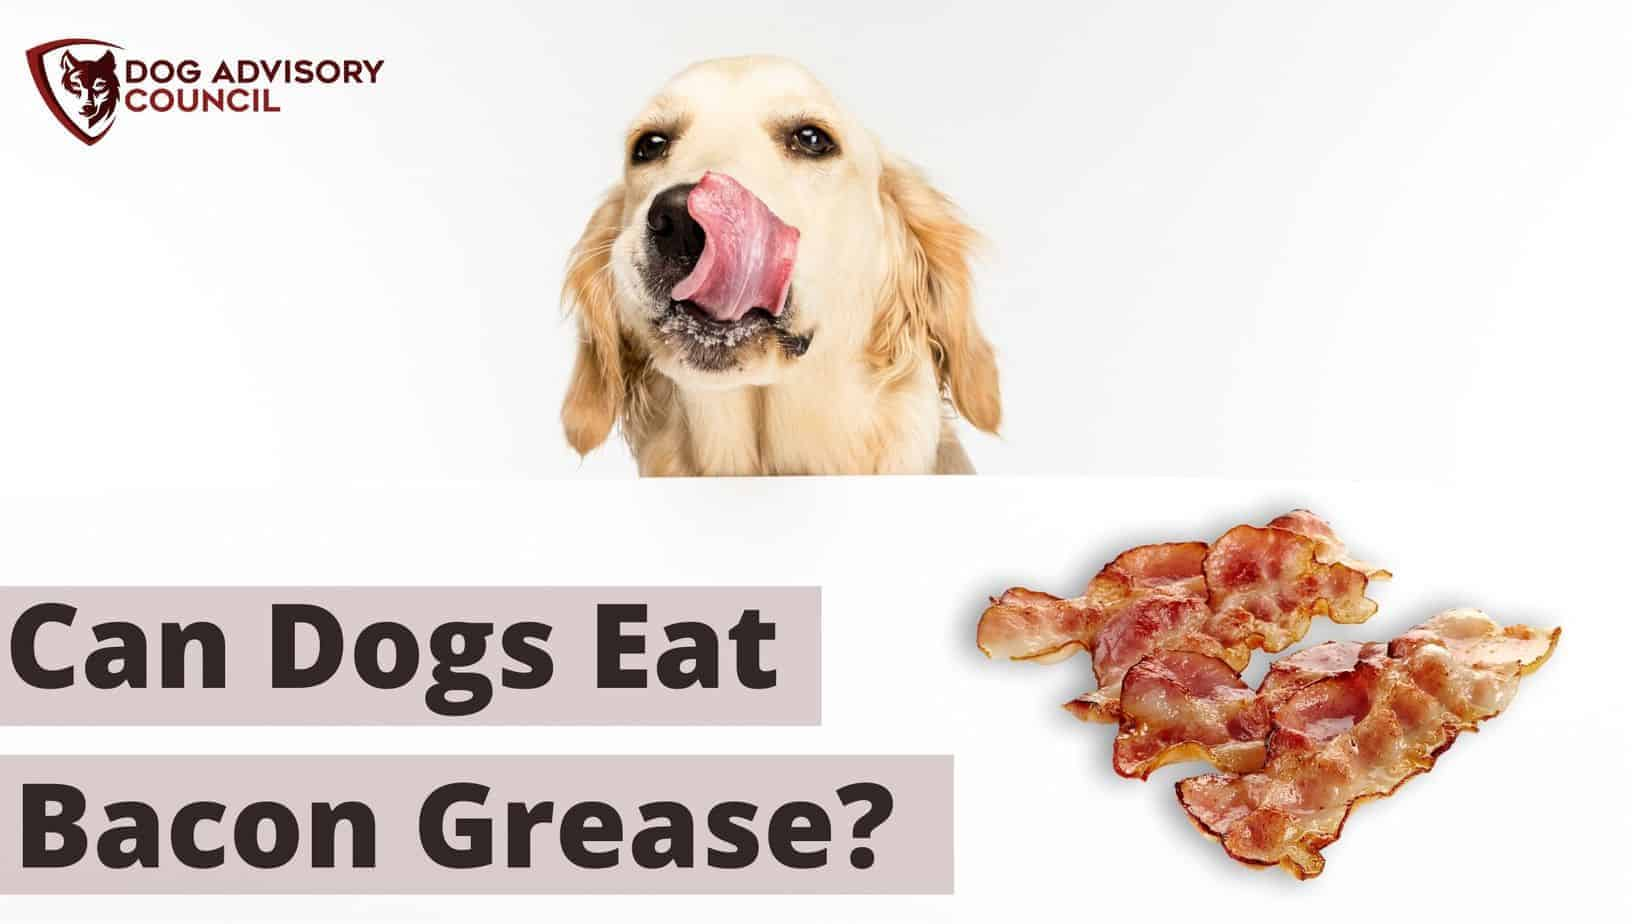 Can Dogs Eat Bacon Grease